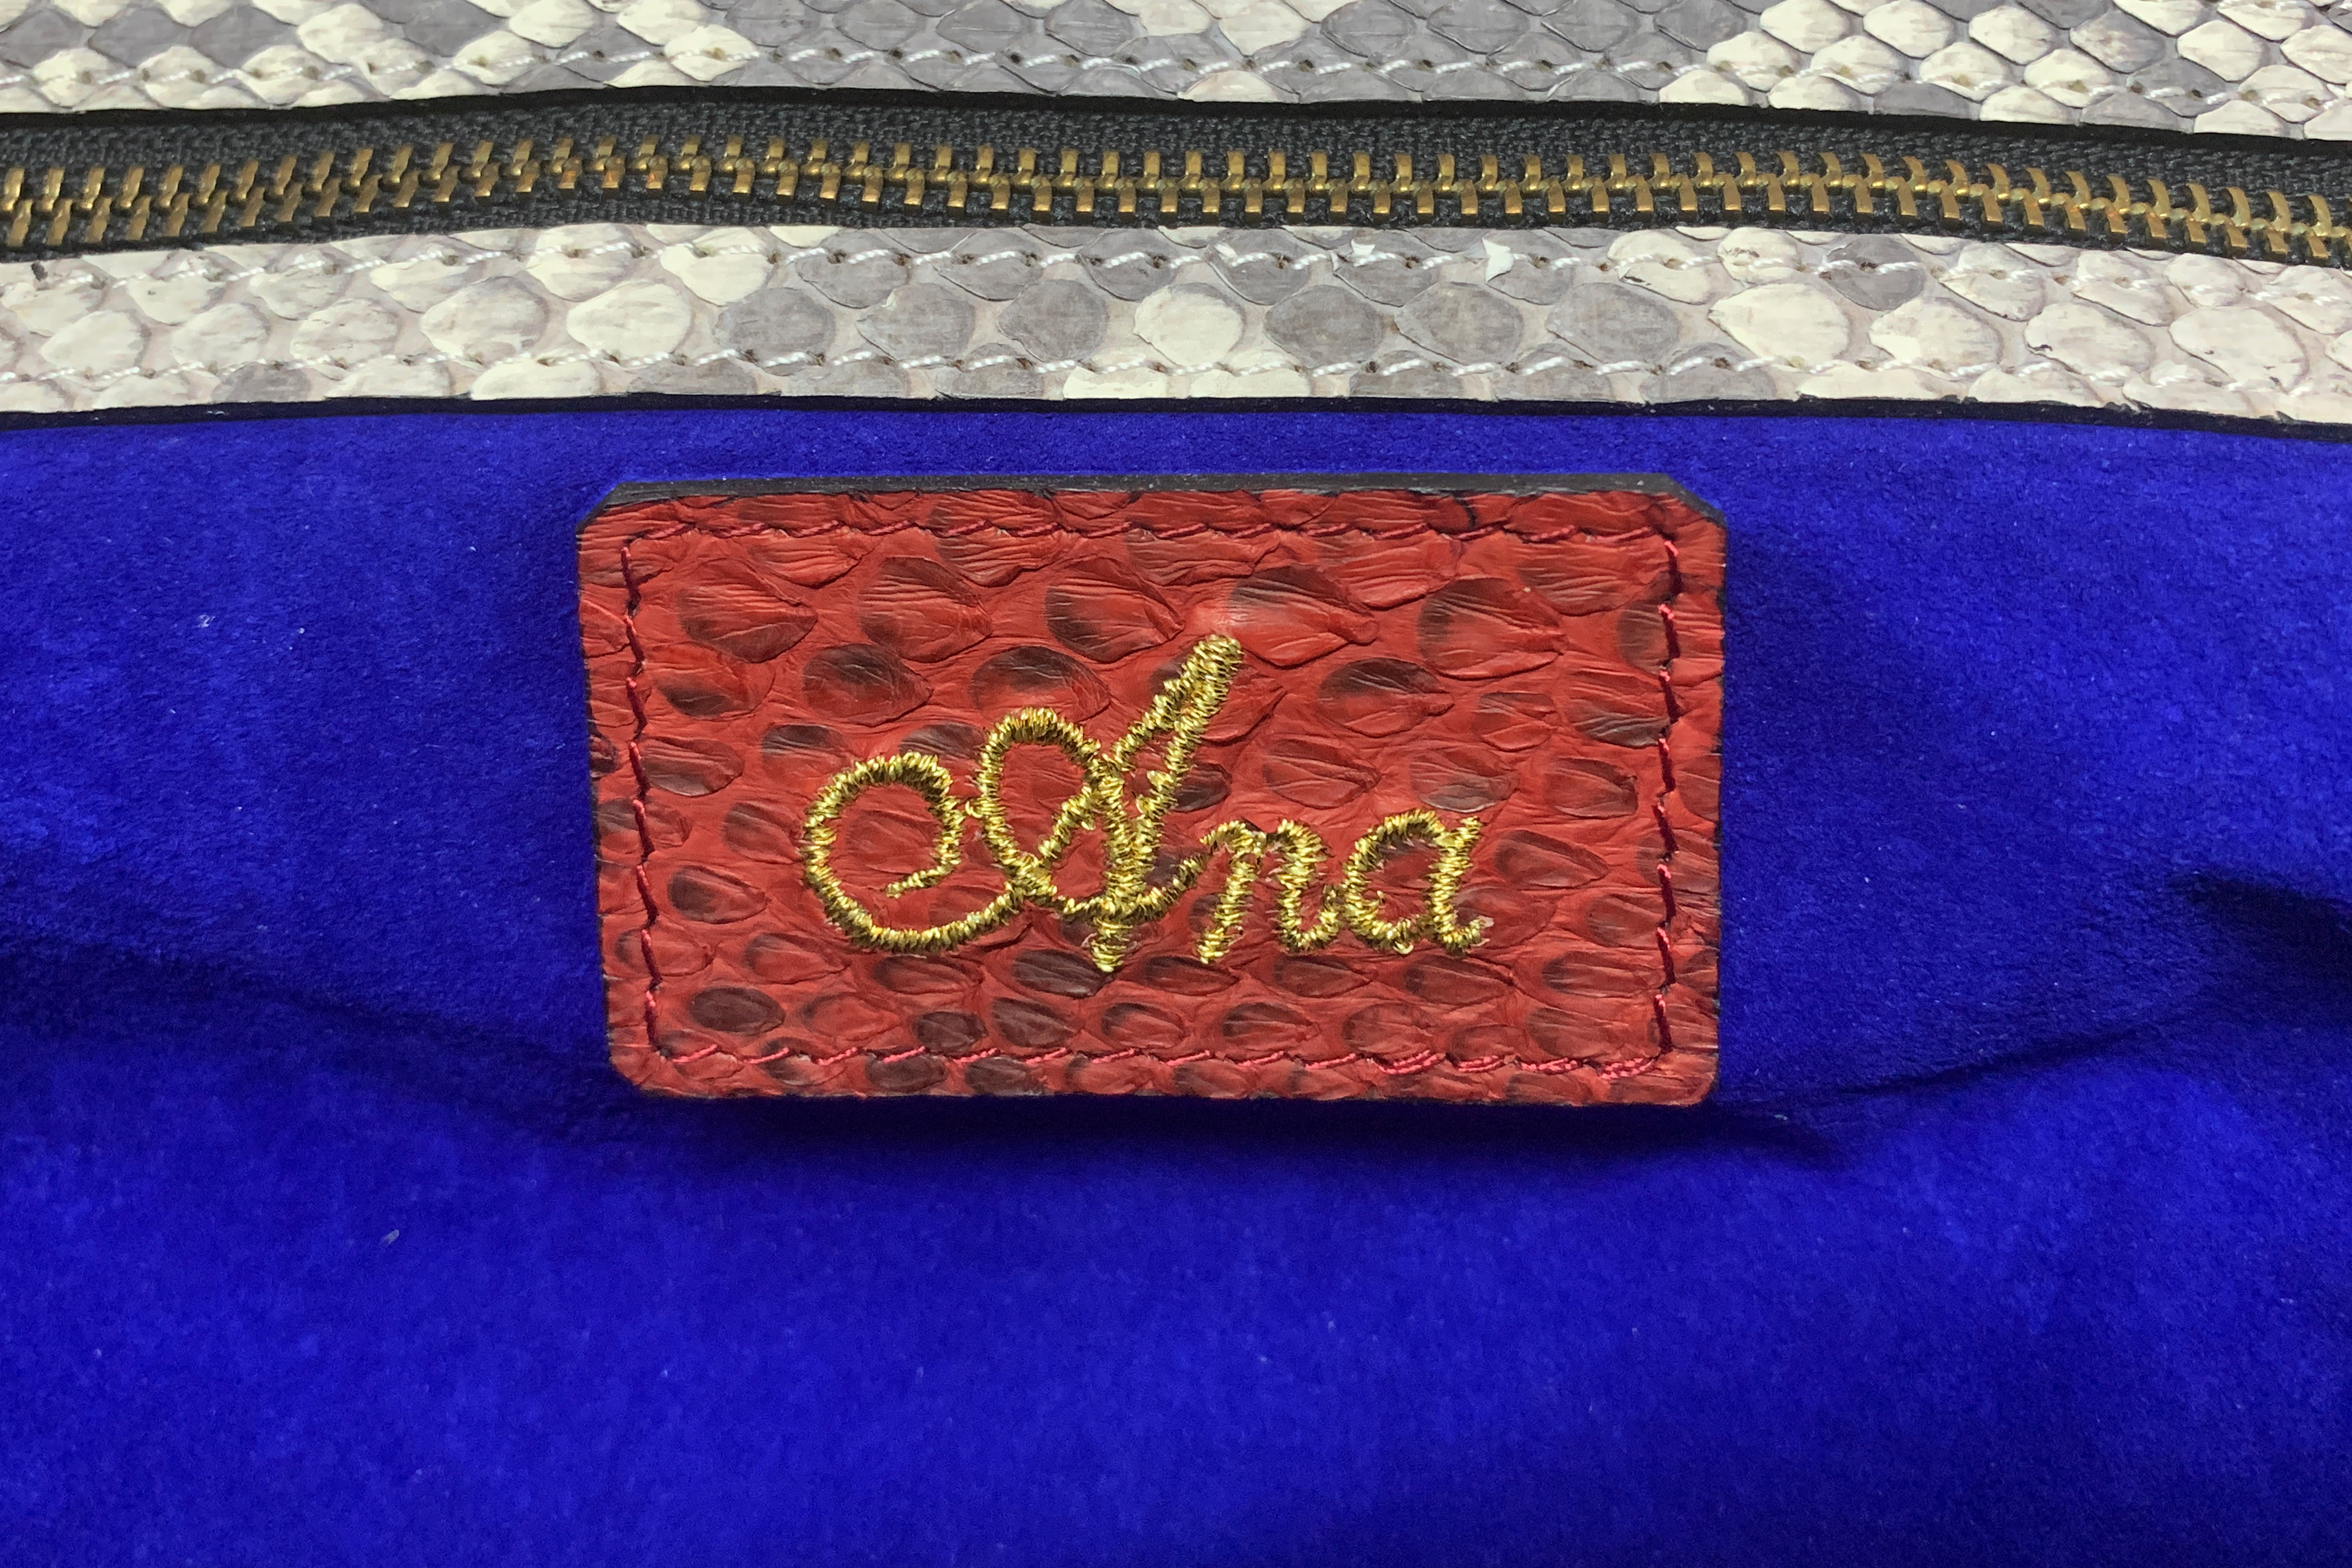 AN ANA MULTICOLOURED SNAKESKIN WEAVED CLUTCH - Image 5 of 5